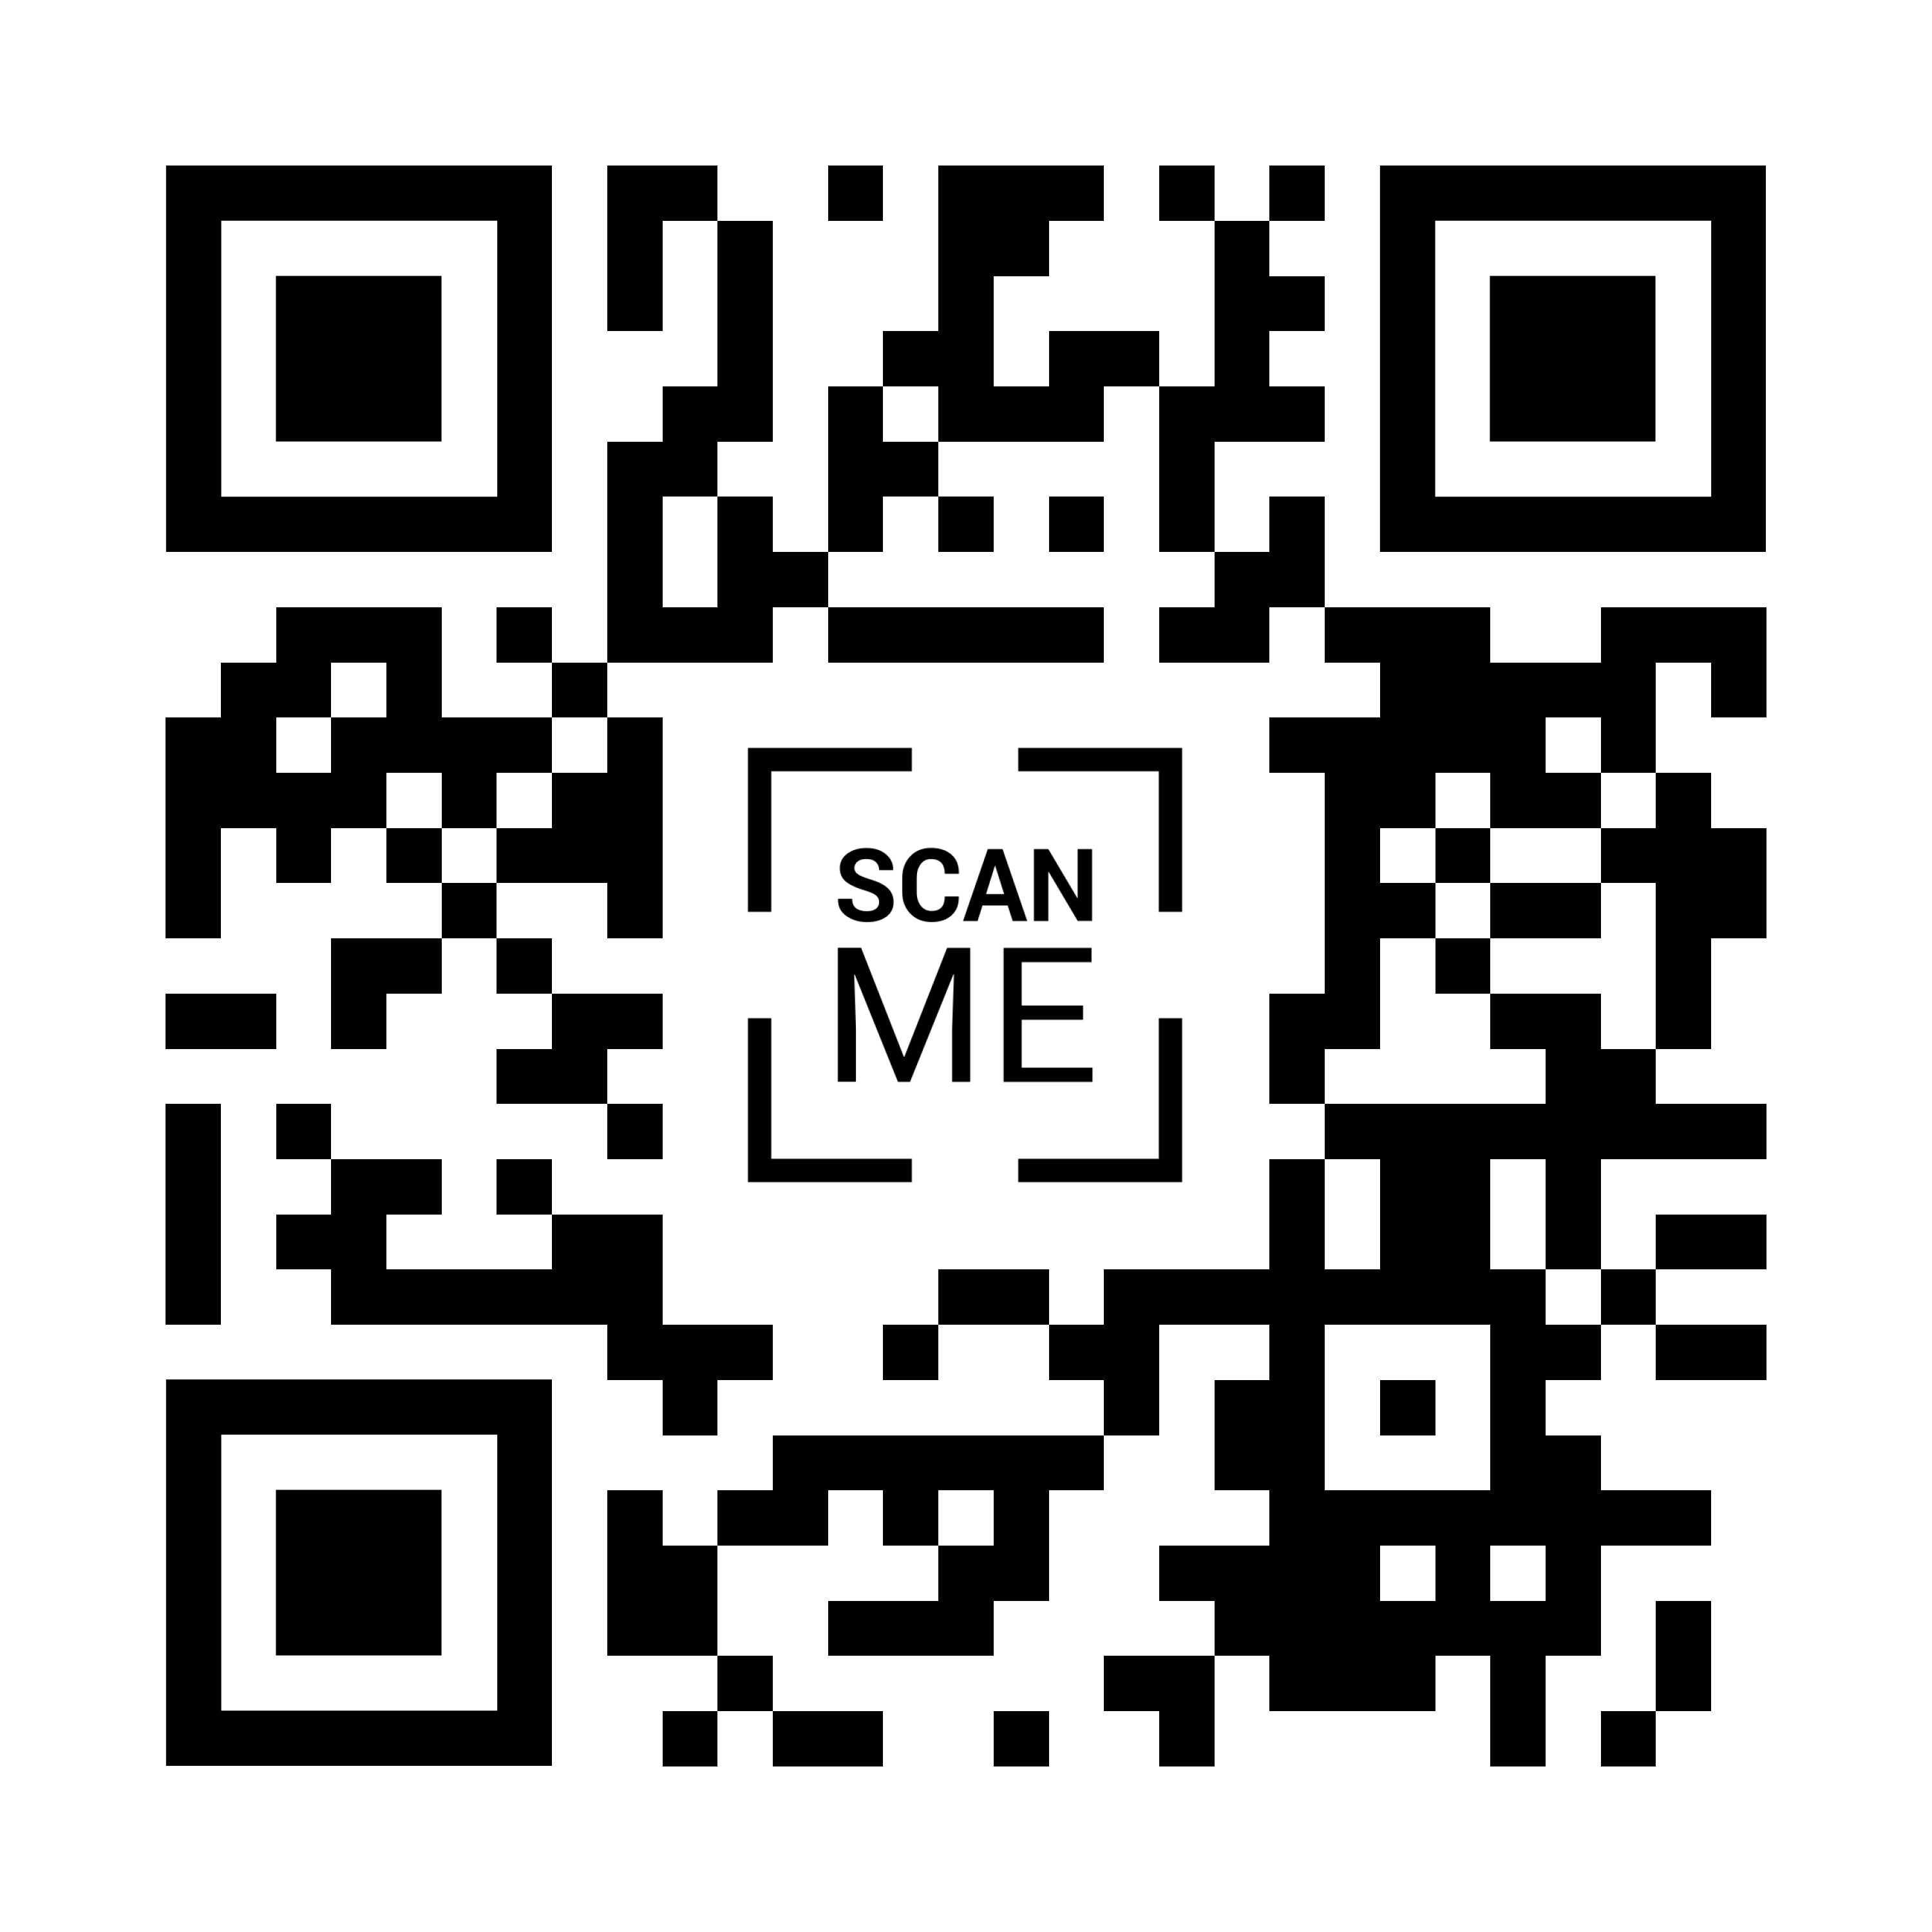 QR Code API for Static Codes.